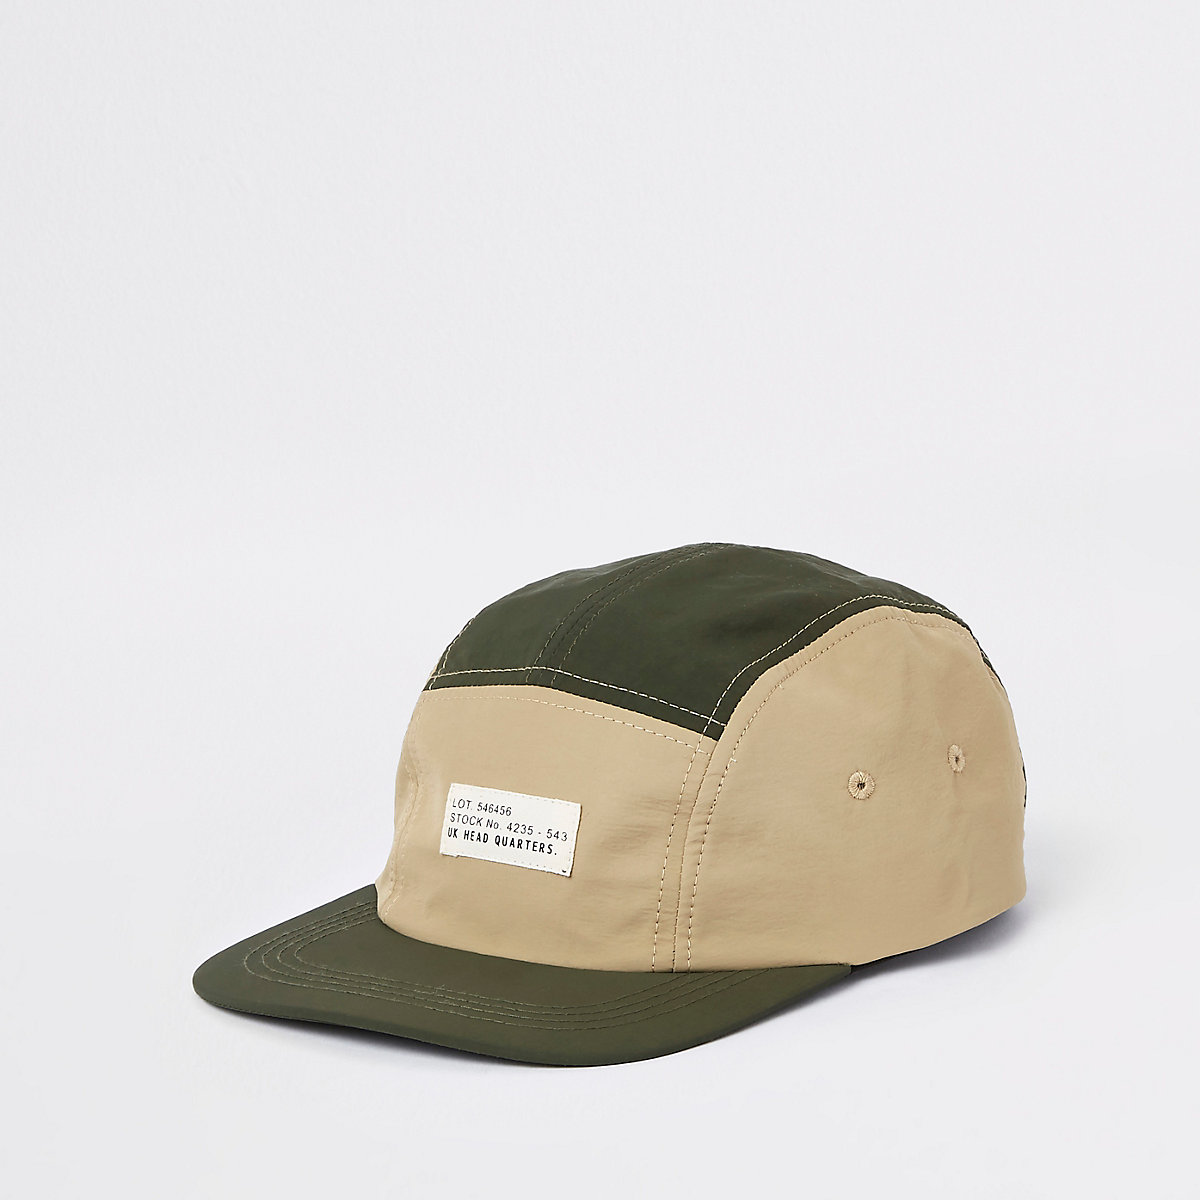 Green panel peak cap